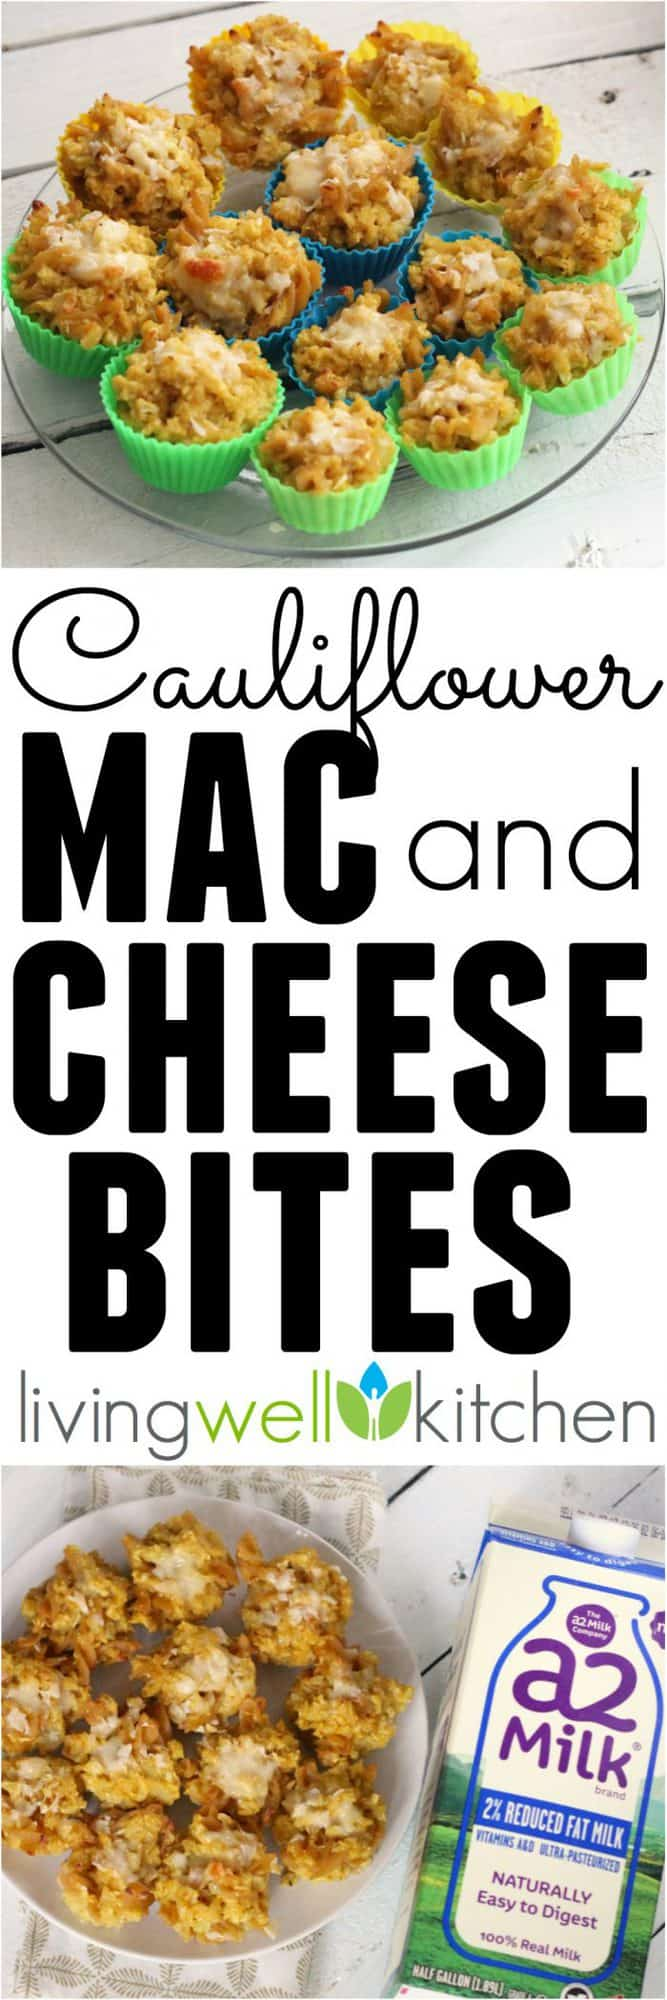 Cauliflower Mac & Cheese Bites from @memeinge are cheesy bites of deliciousness that are packed with flavor and veggies. Great for appetizers, snacks, lunch or dinner; these are sure to please everyone! Vegetarian recipe easily made gluten free